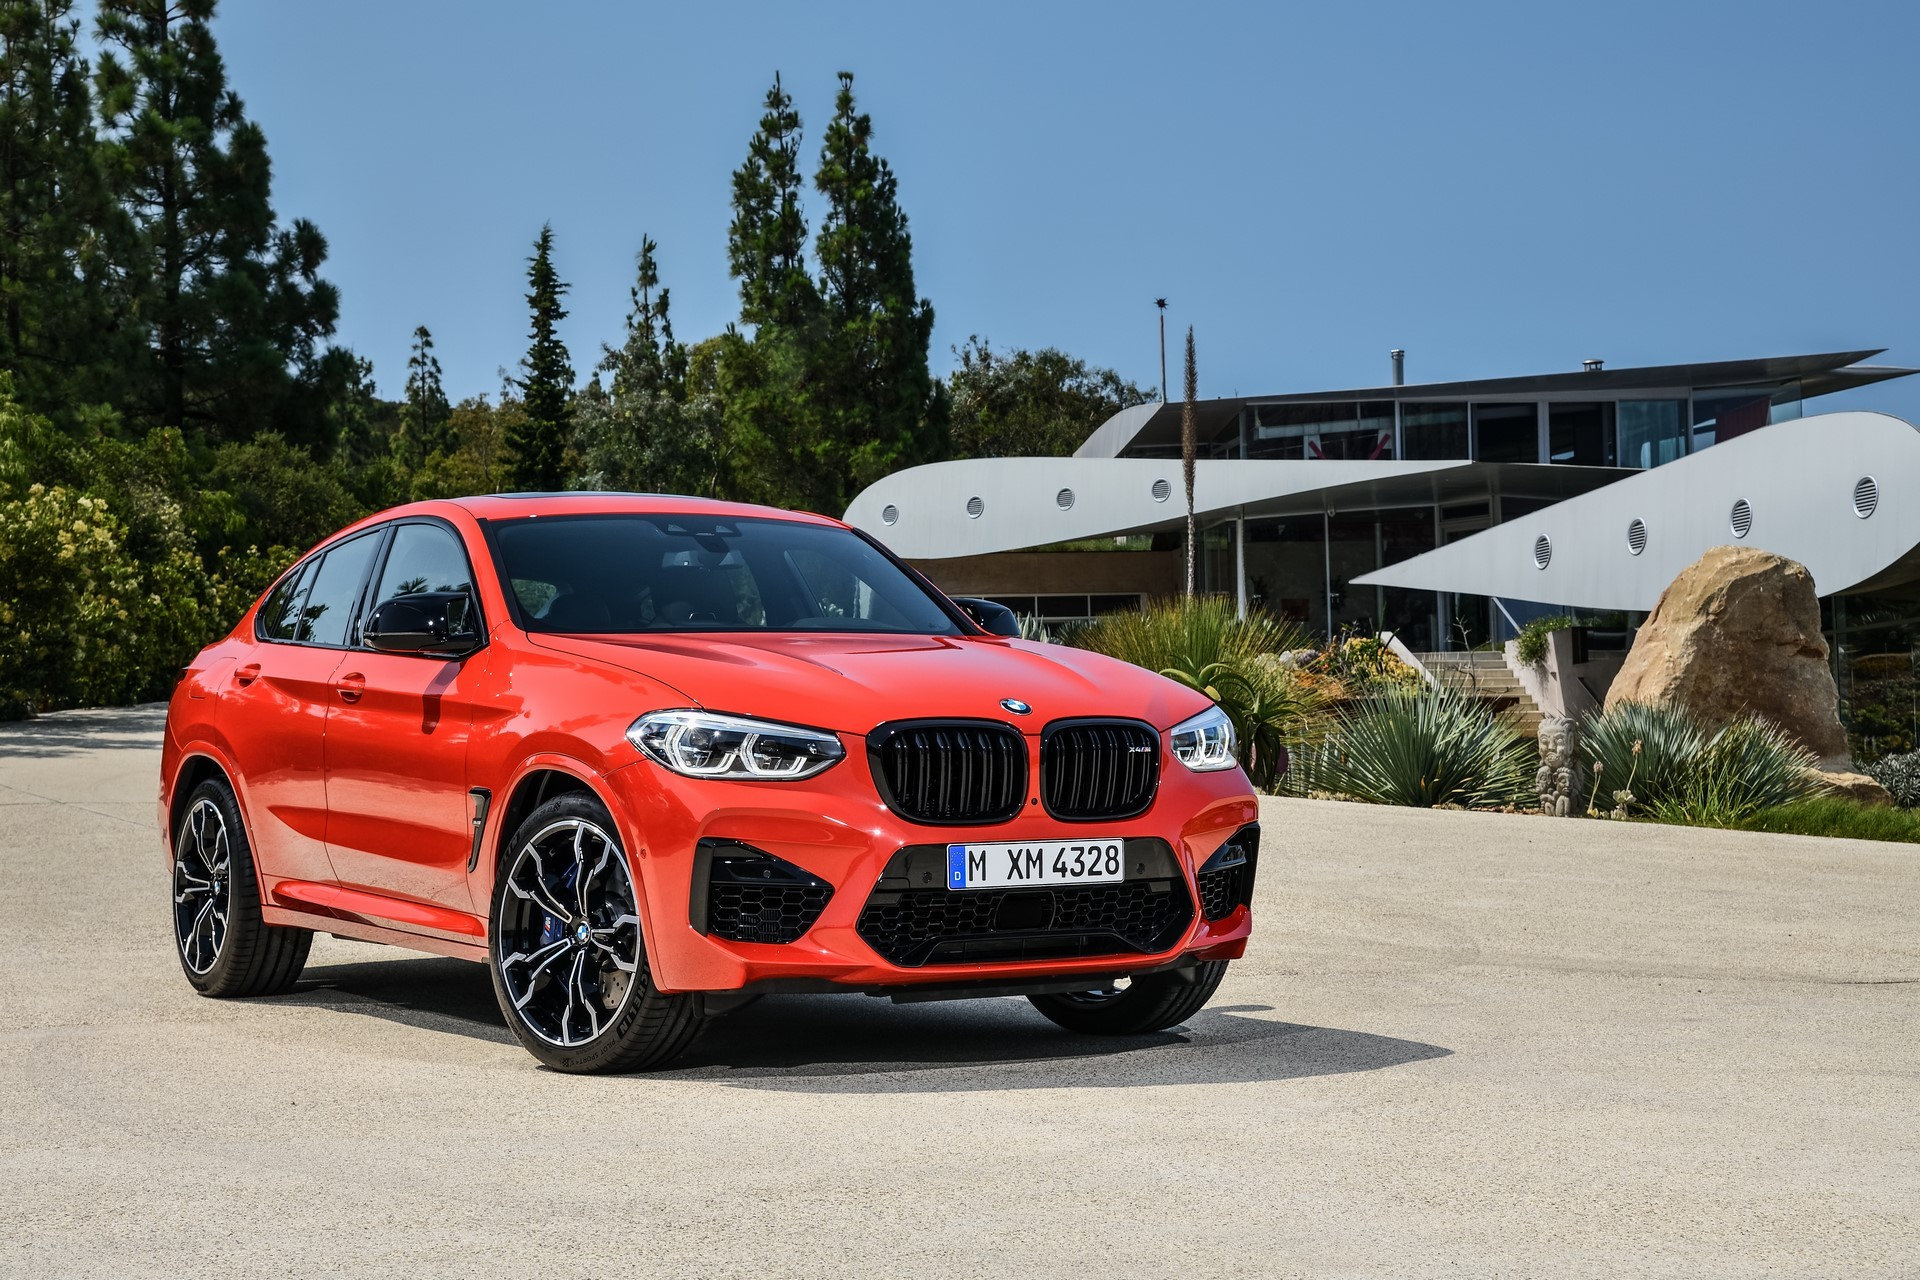 BMW X3 M and X4 M 2019 (55)